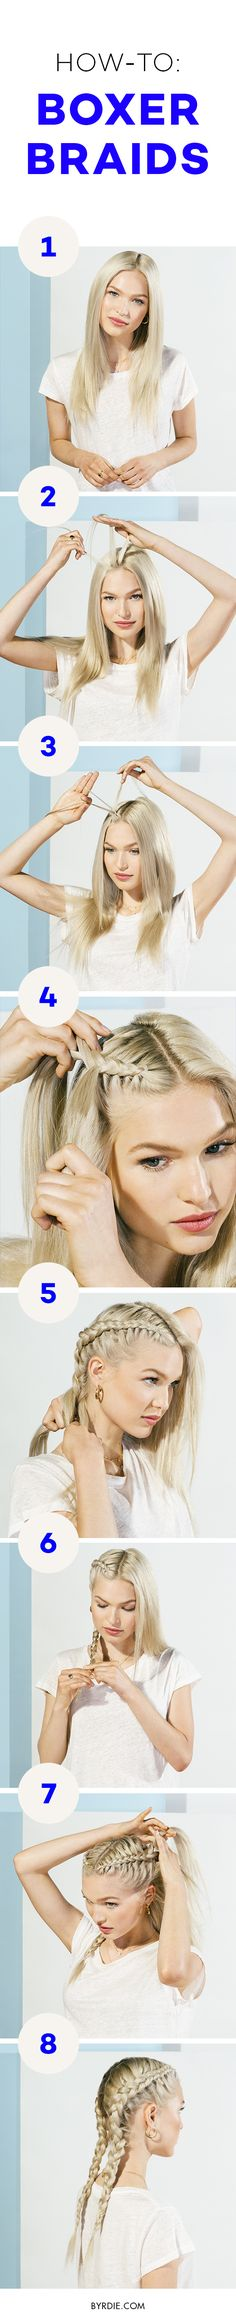 How to do a boxer braid                                                                                                                                                                                 More